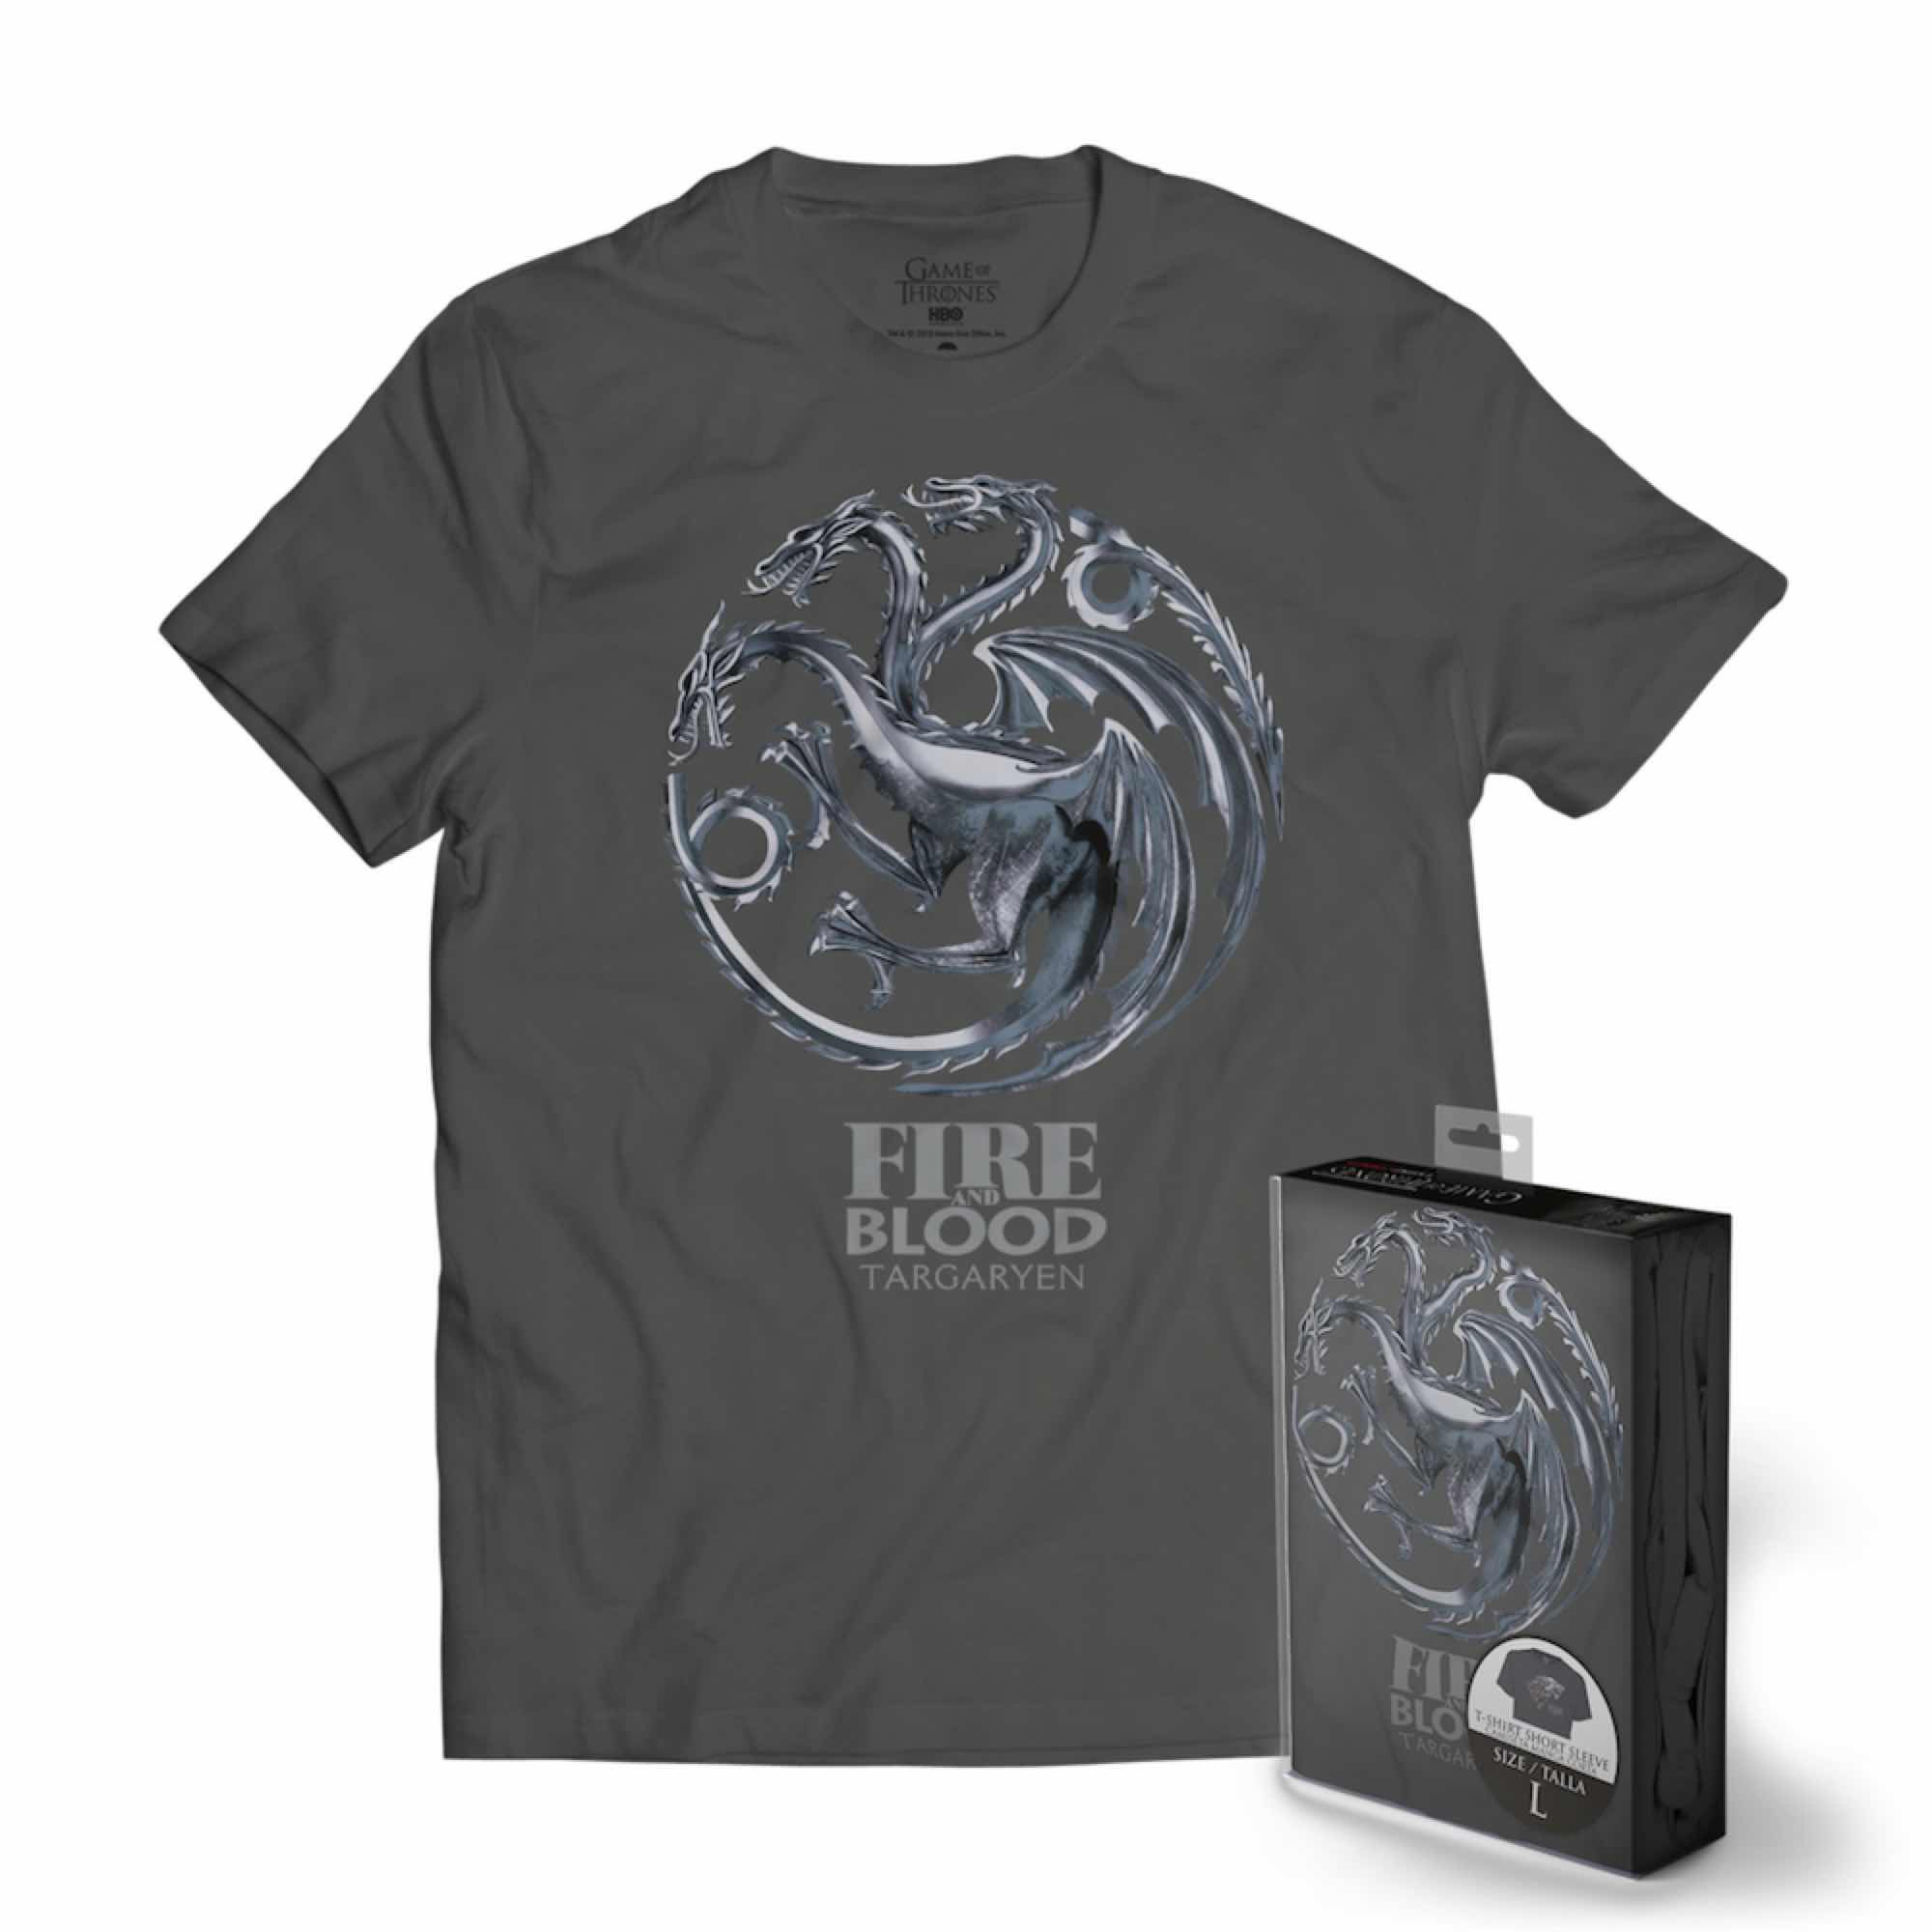 LOGO TARGARYEN ESCUDO METALICO CAMISETA GRIS CHICO T-XXL GAME OF THRONES